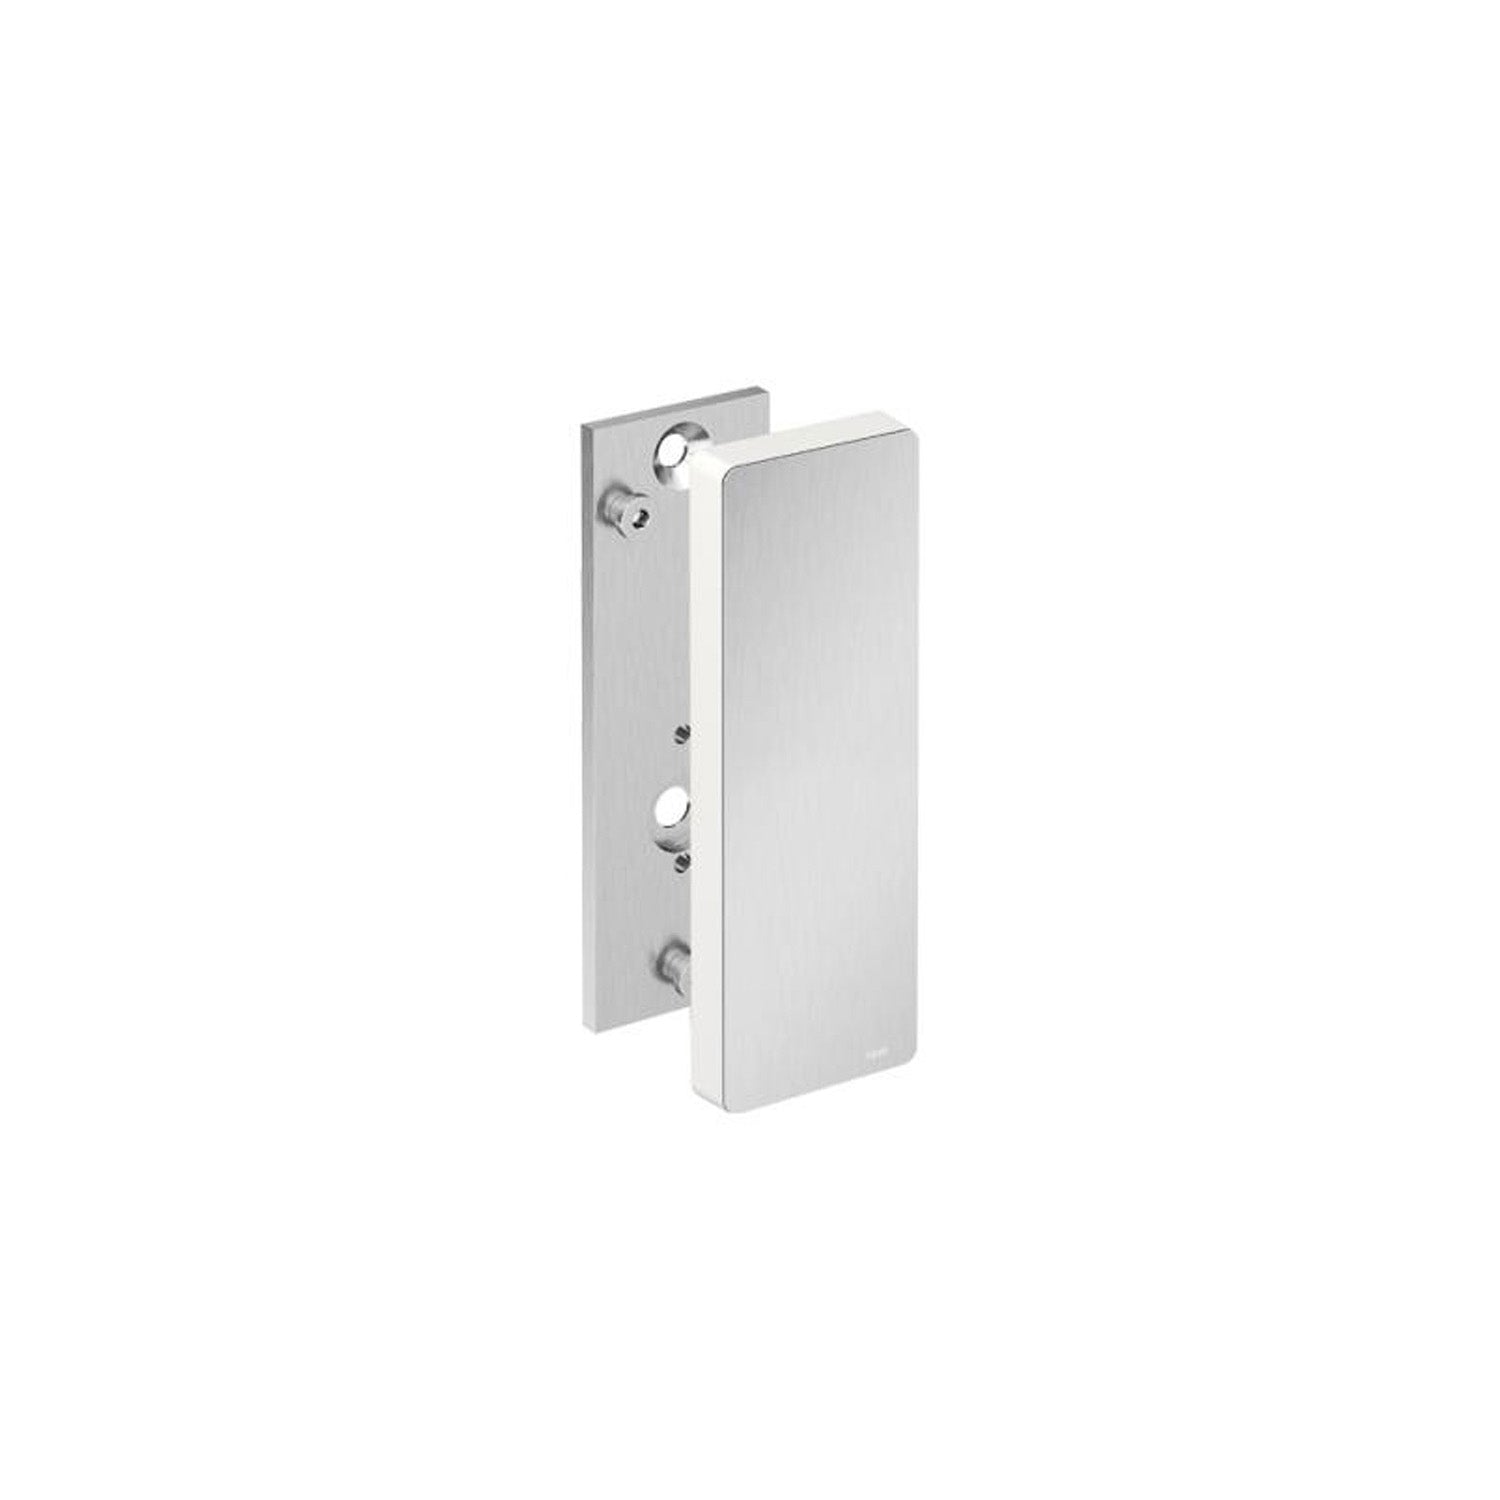 Freestyle Removable Hinged Grab Rail Mounting Plate and Cover with a satin steel finish on a white background